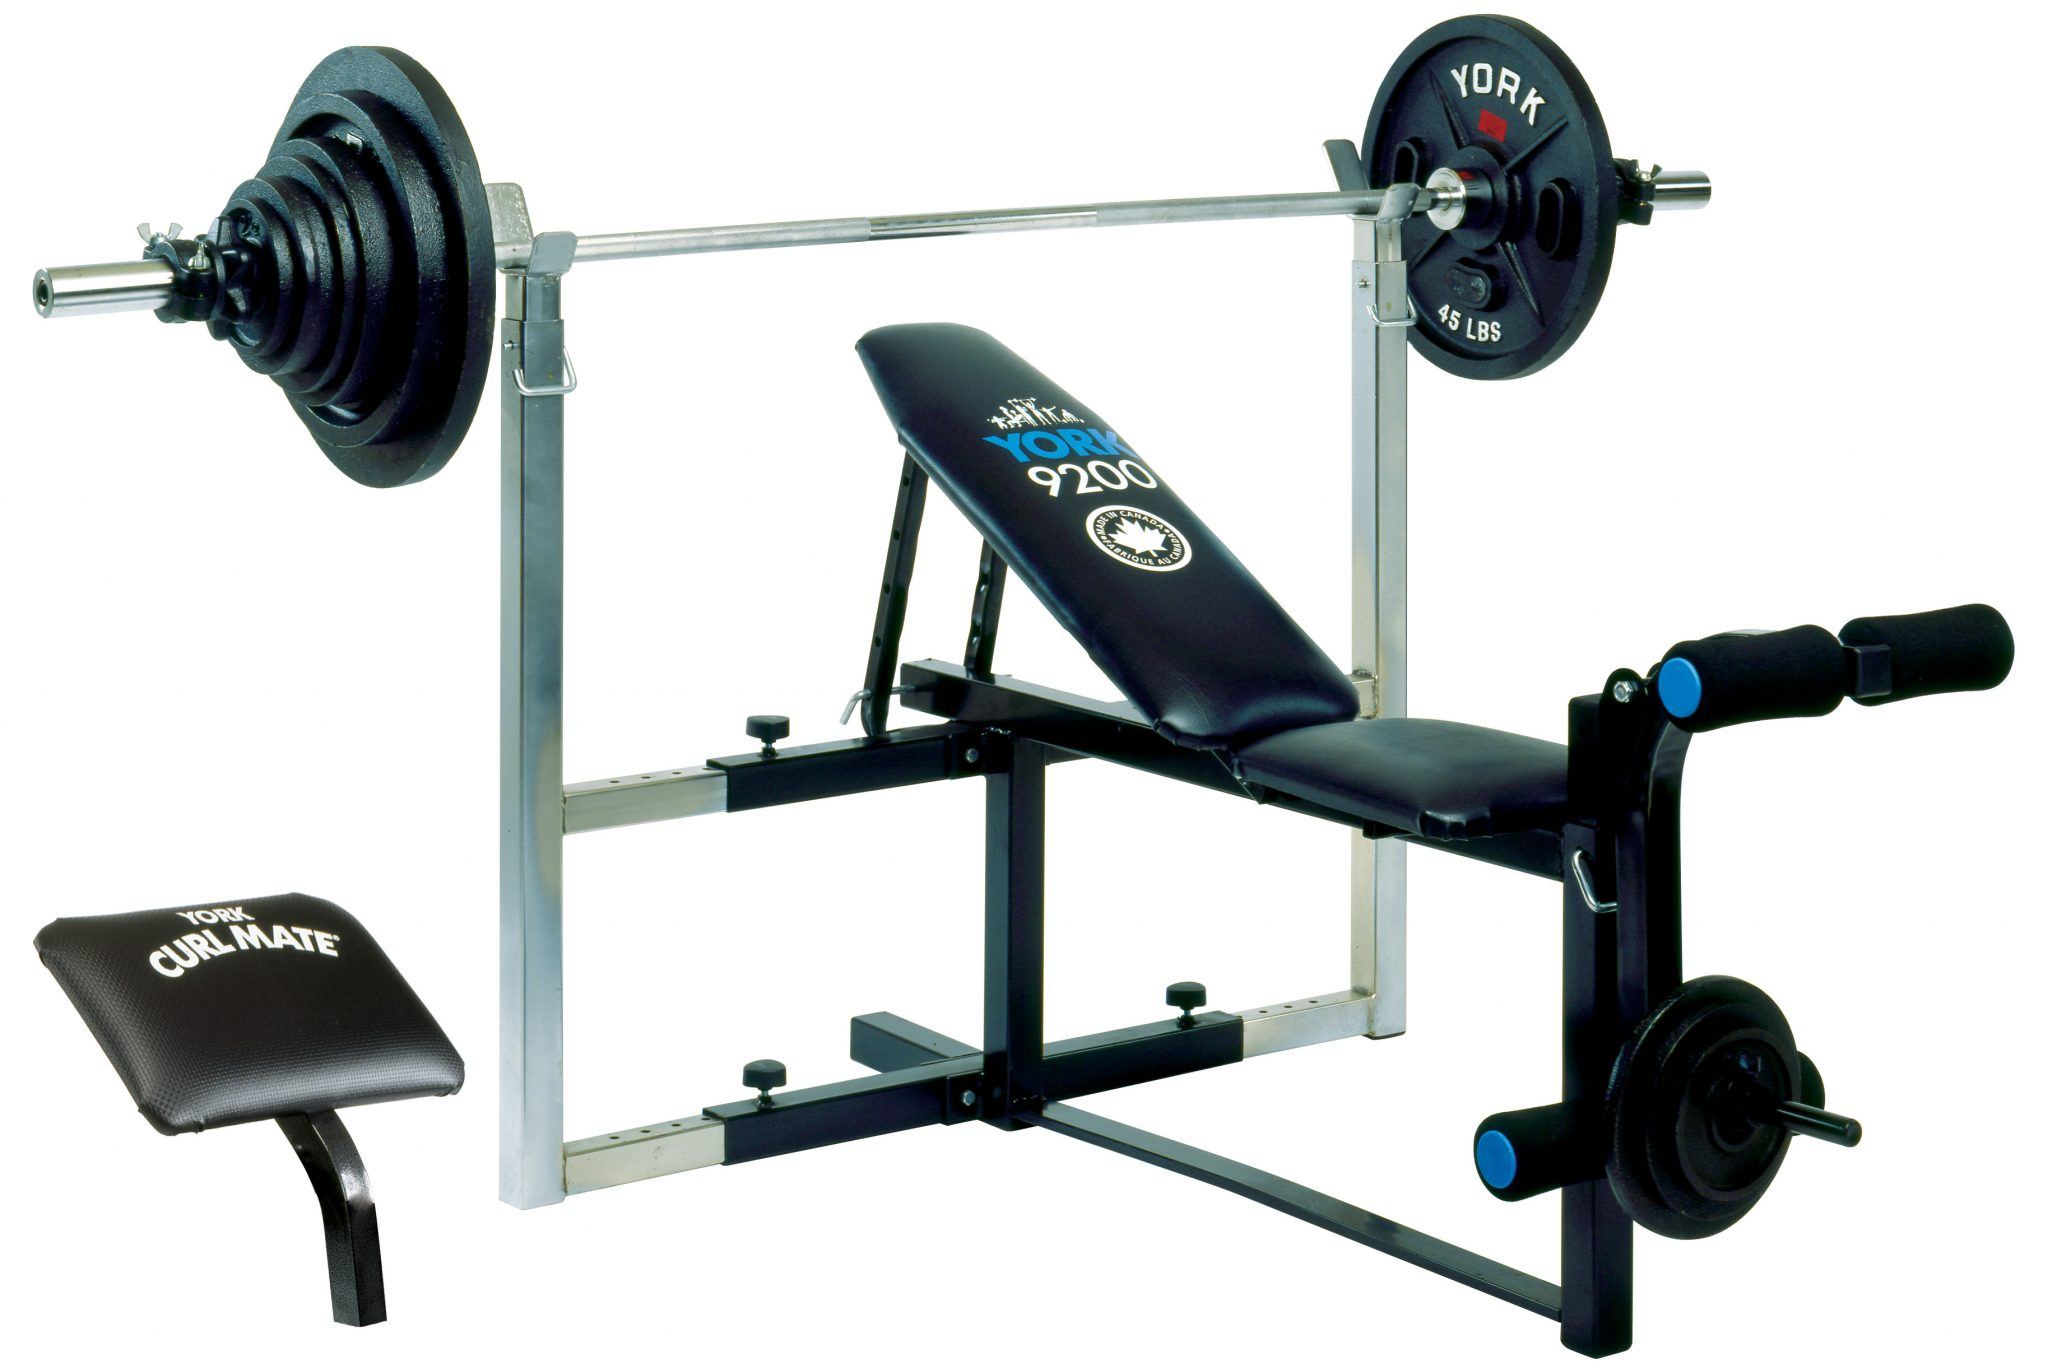 York Barbell 9200 Expandable Bench | Home Gym Equipment